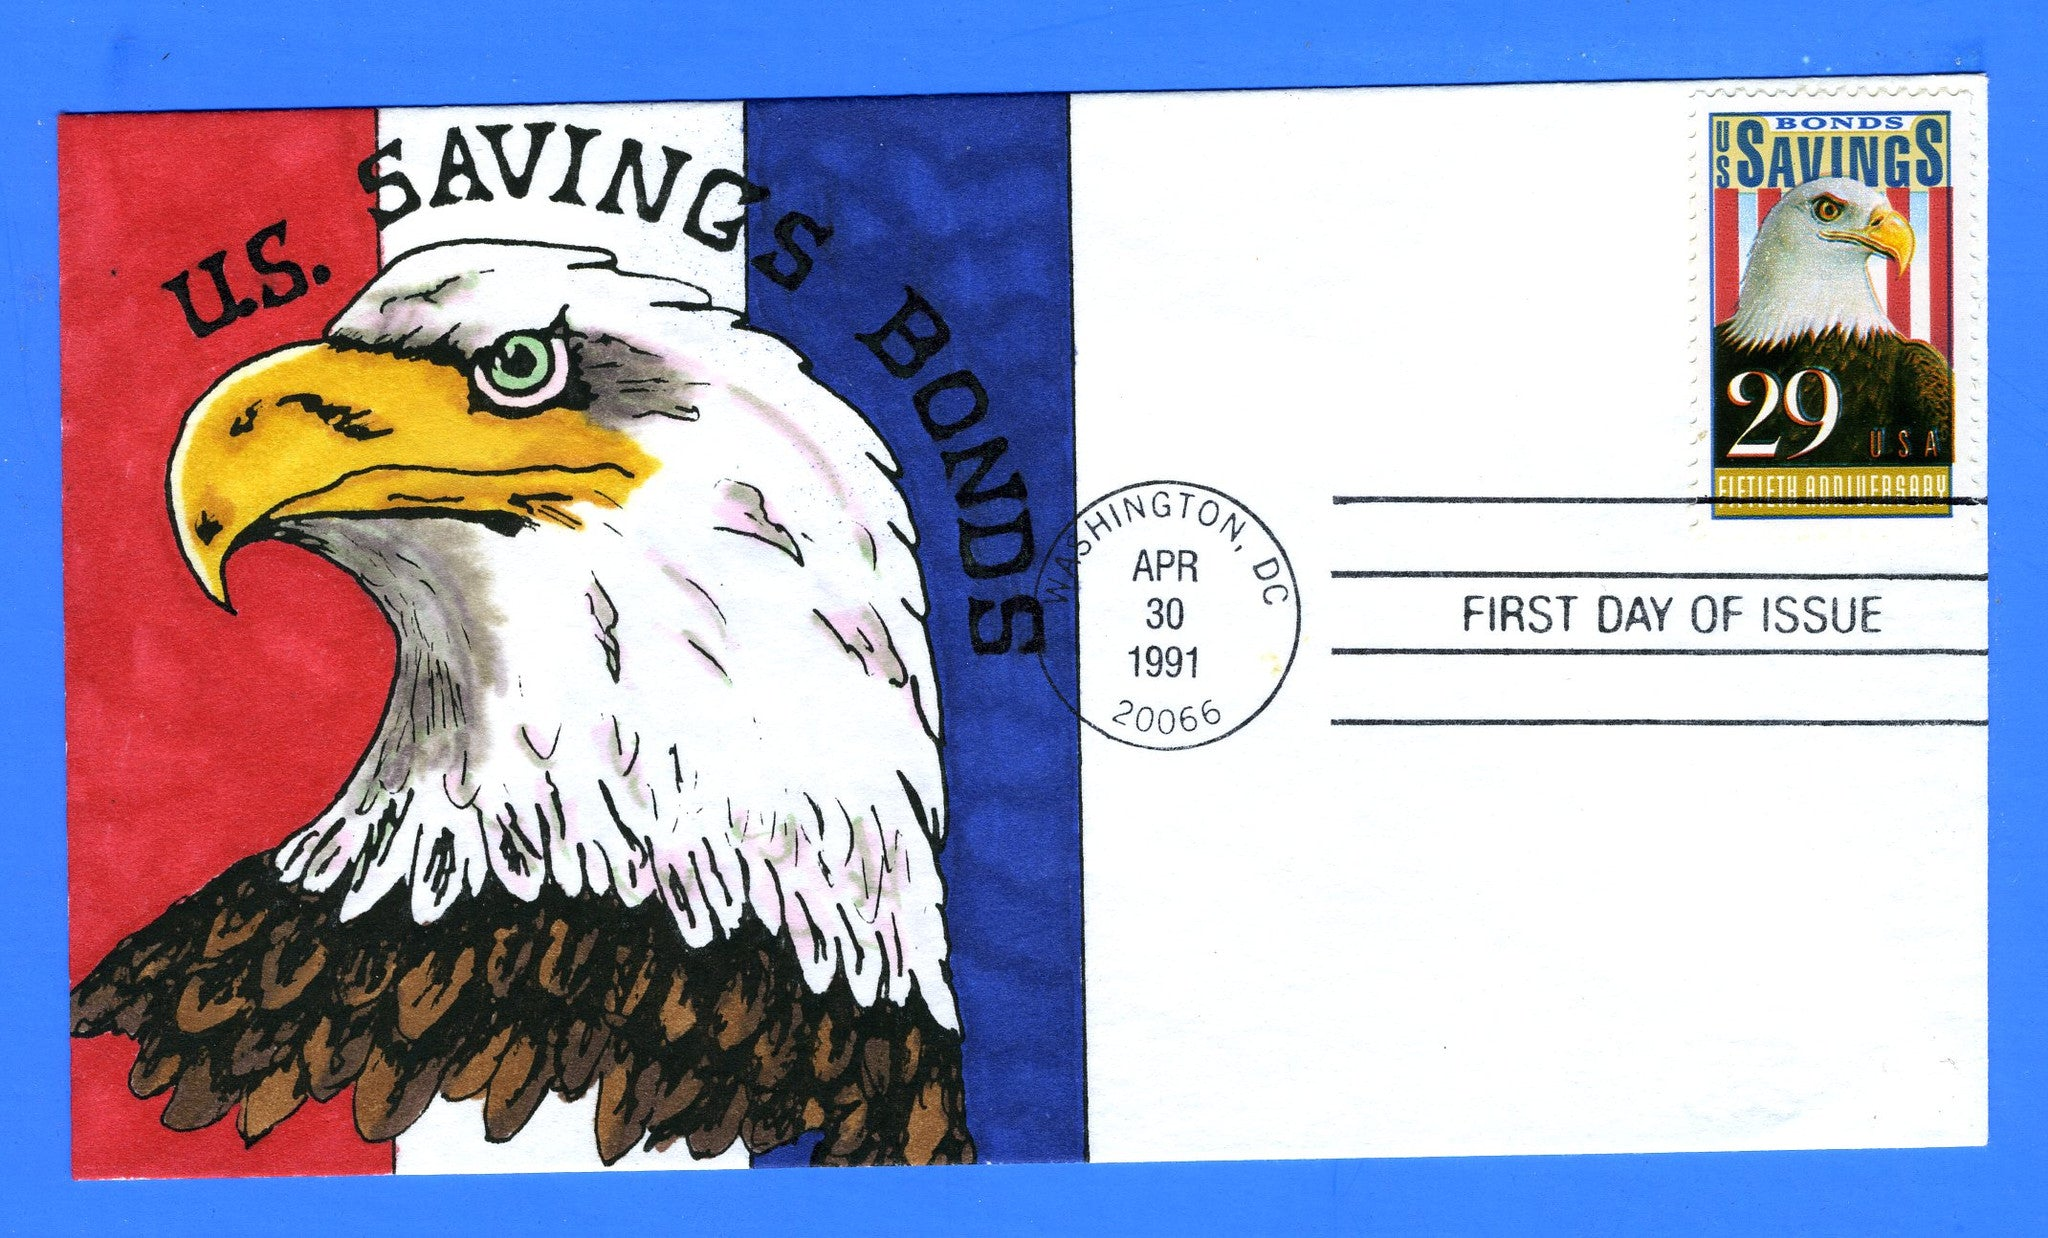 Scott 2534 29c Saving Bonds Hand Painted First Day Cover Unattributed